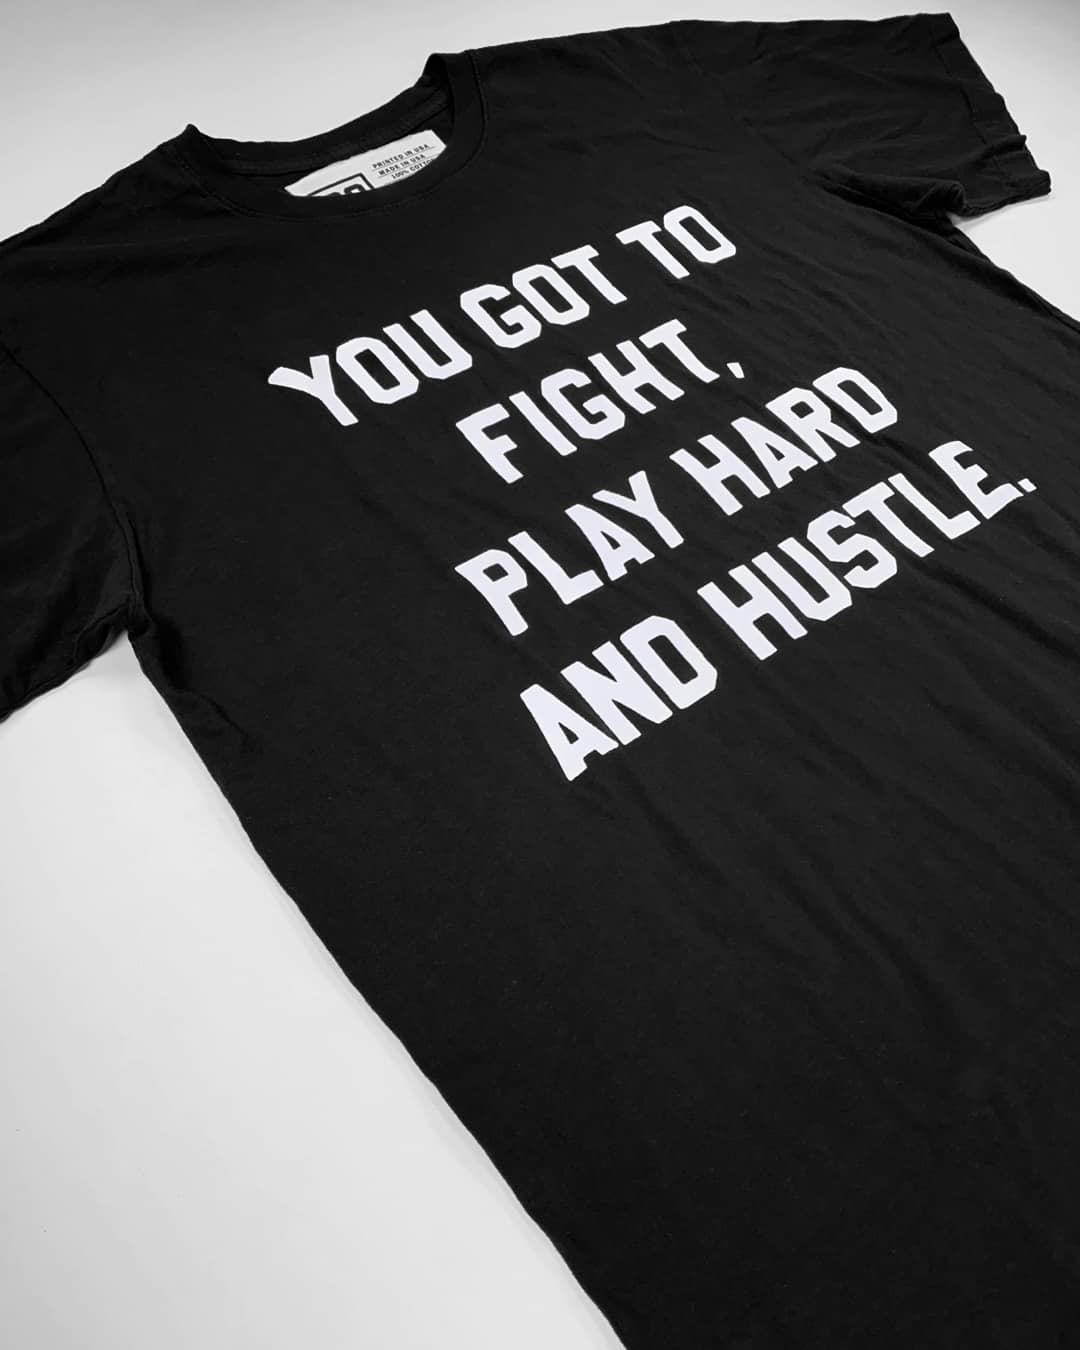 RO - Fight Play Hustle Tee - Roots of Inc dba Roots of Fight